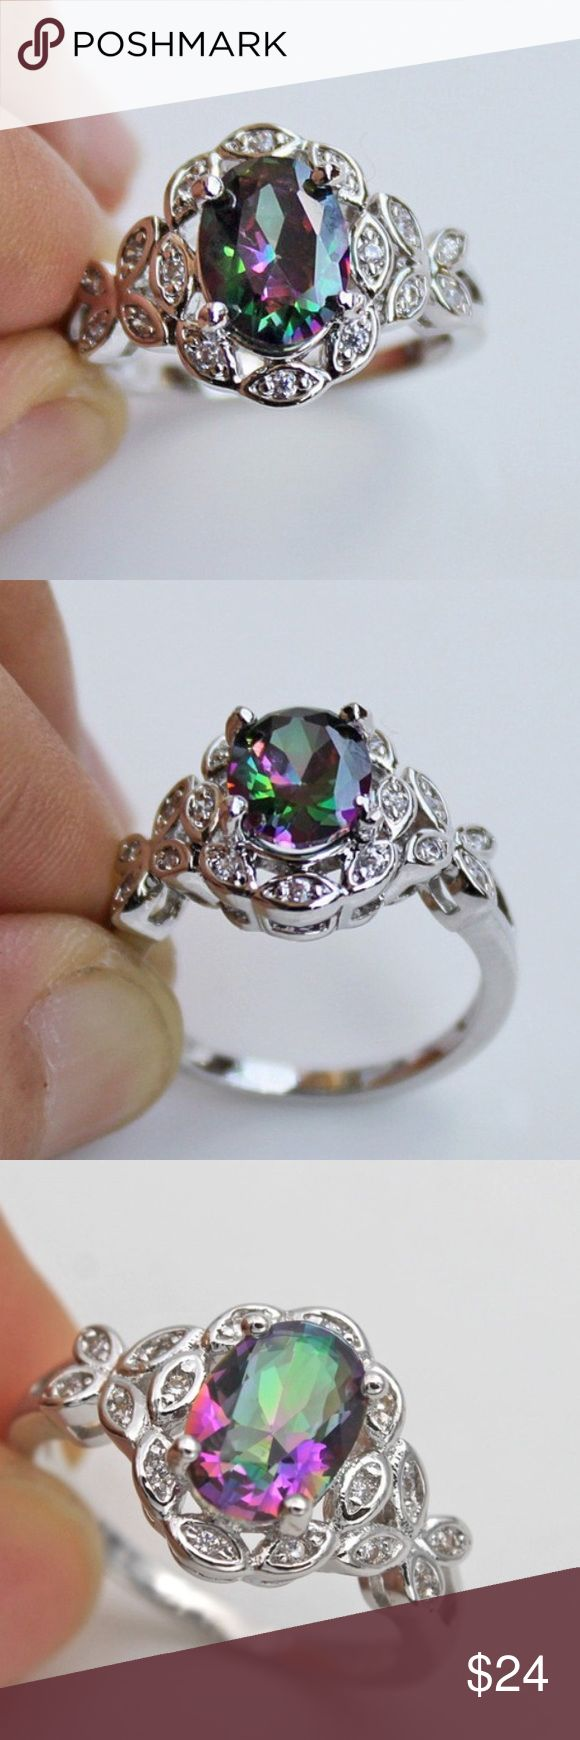 18k white gold ring mystical topaz new 18k white gold filled ring mystical topaz new . This ring is so sparkly and gorgeous . It's has colors of purple and green Jewelry Rings